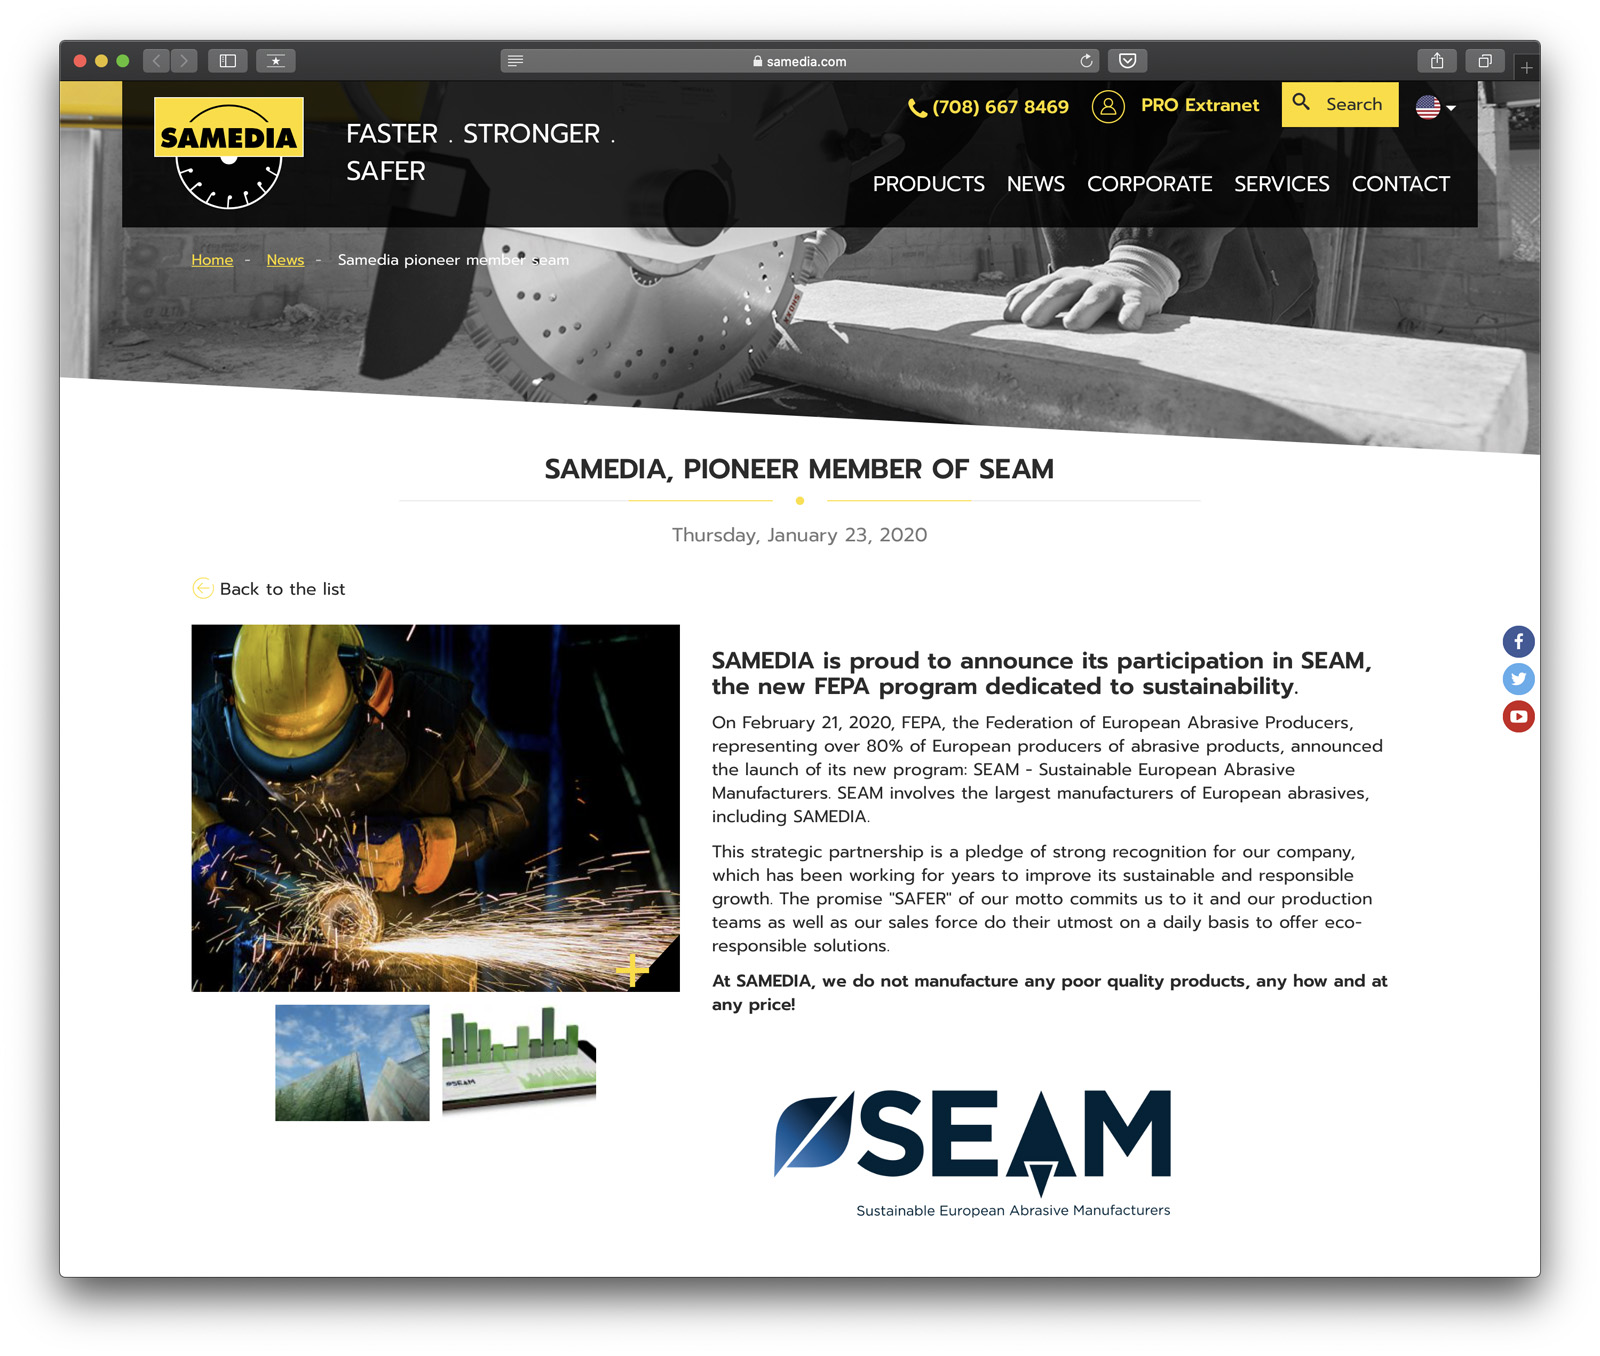 SAMEDIA is proud to announce its participation in SEAM, the new FEPA program dedicated to sustainability.